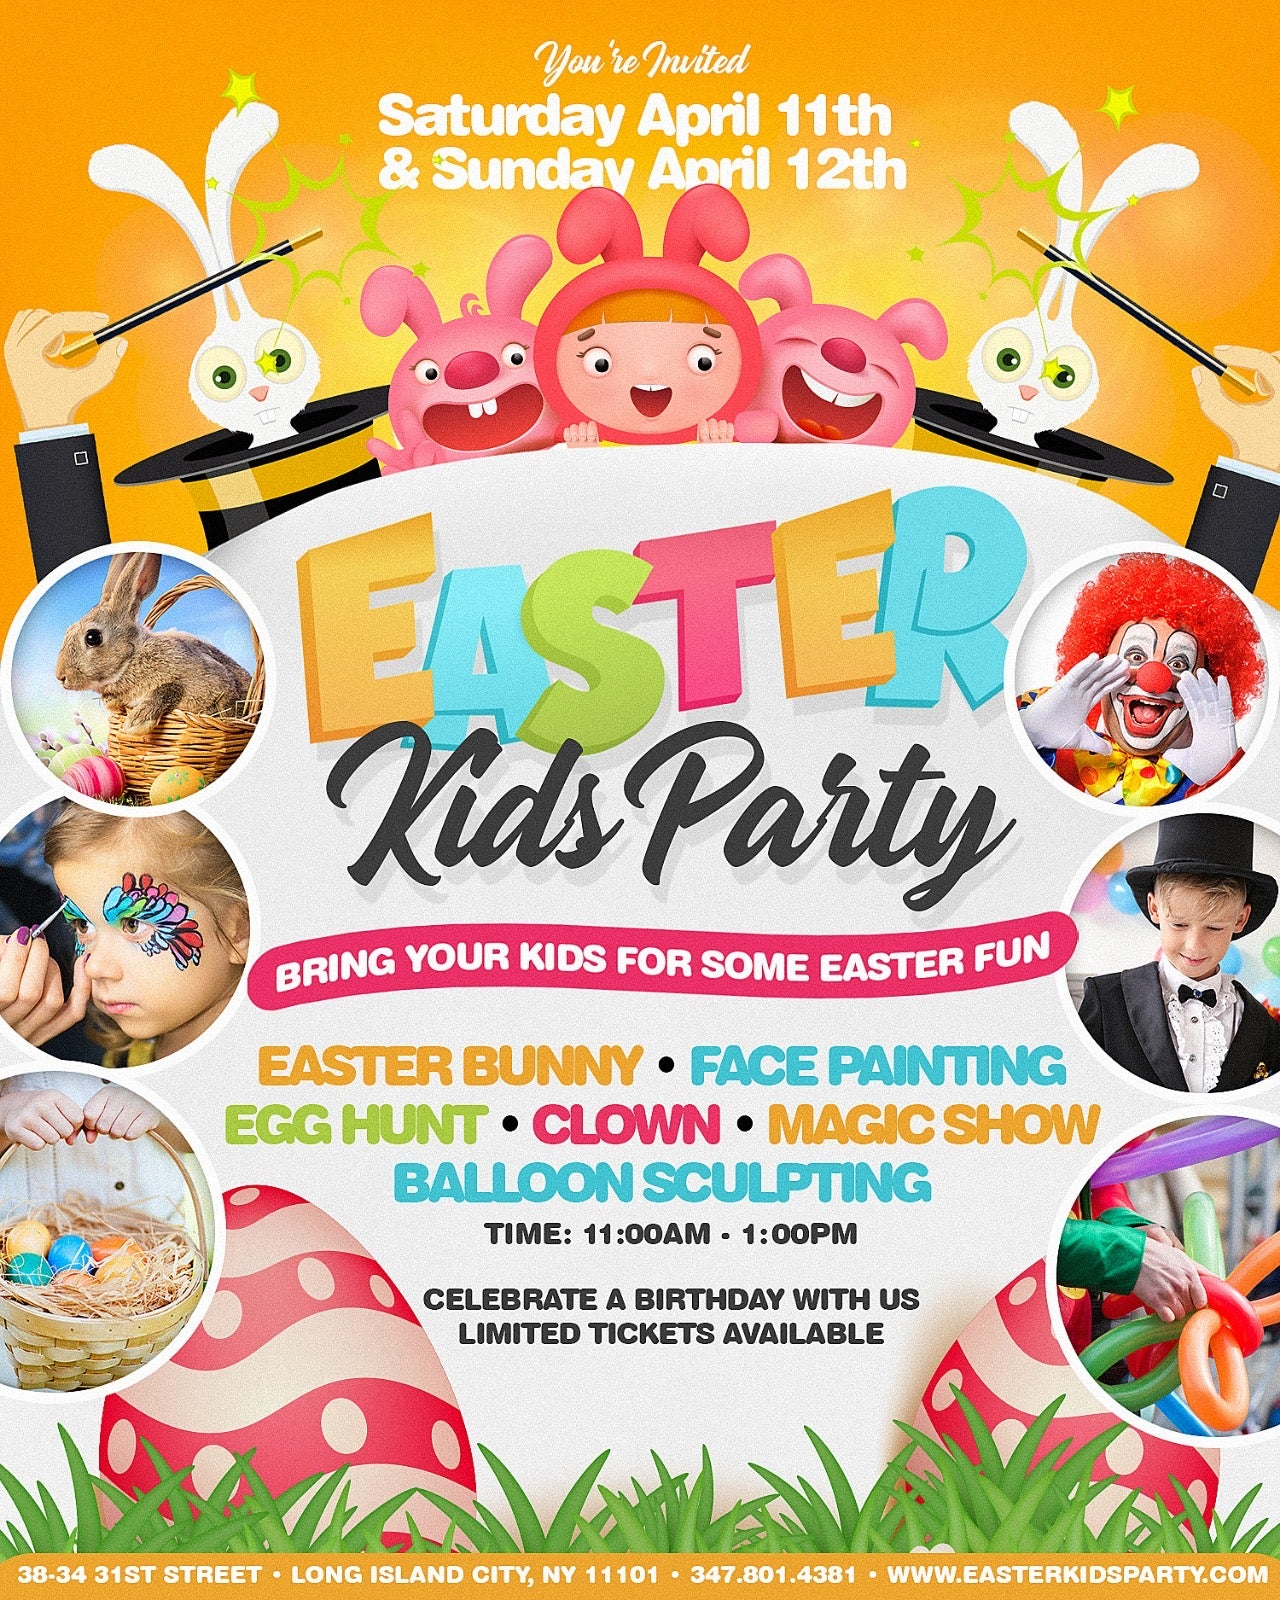 Sunday Easter Kids Party